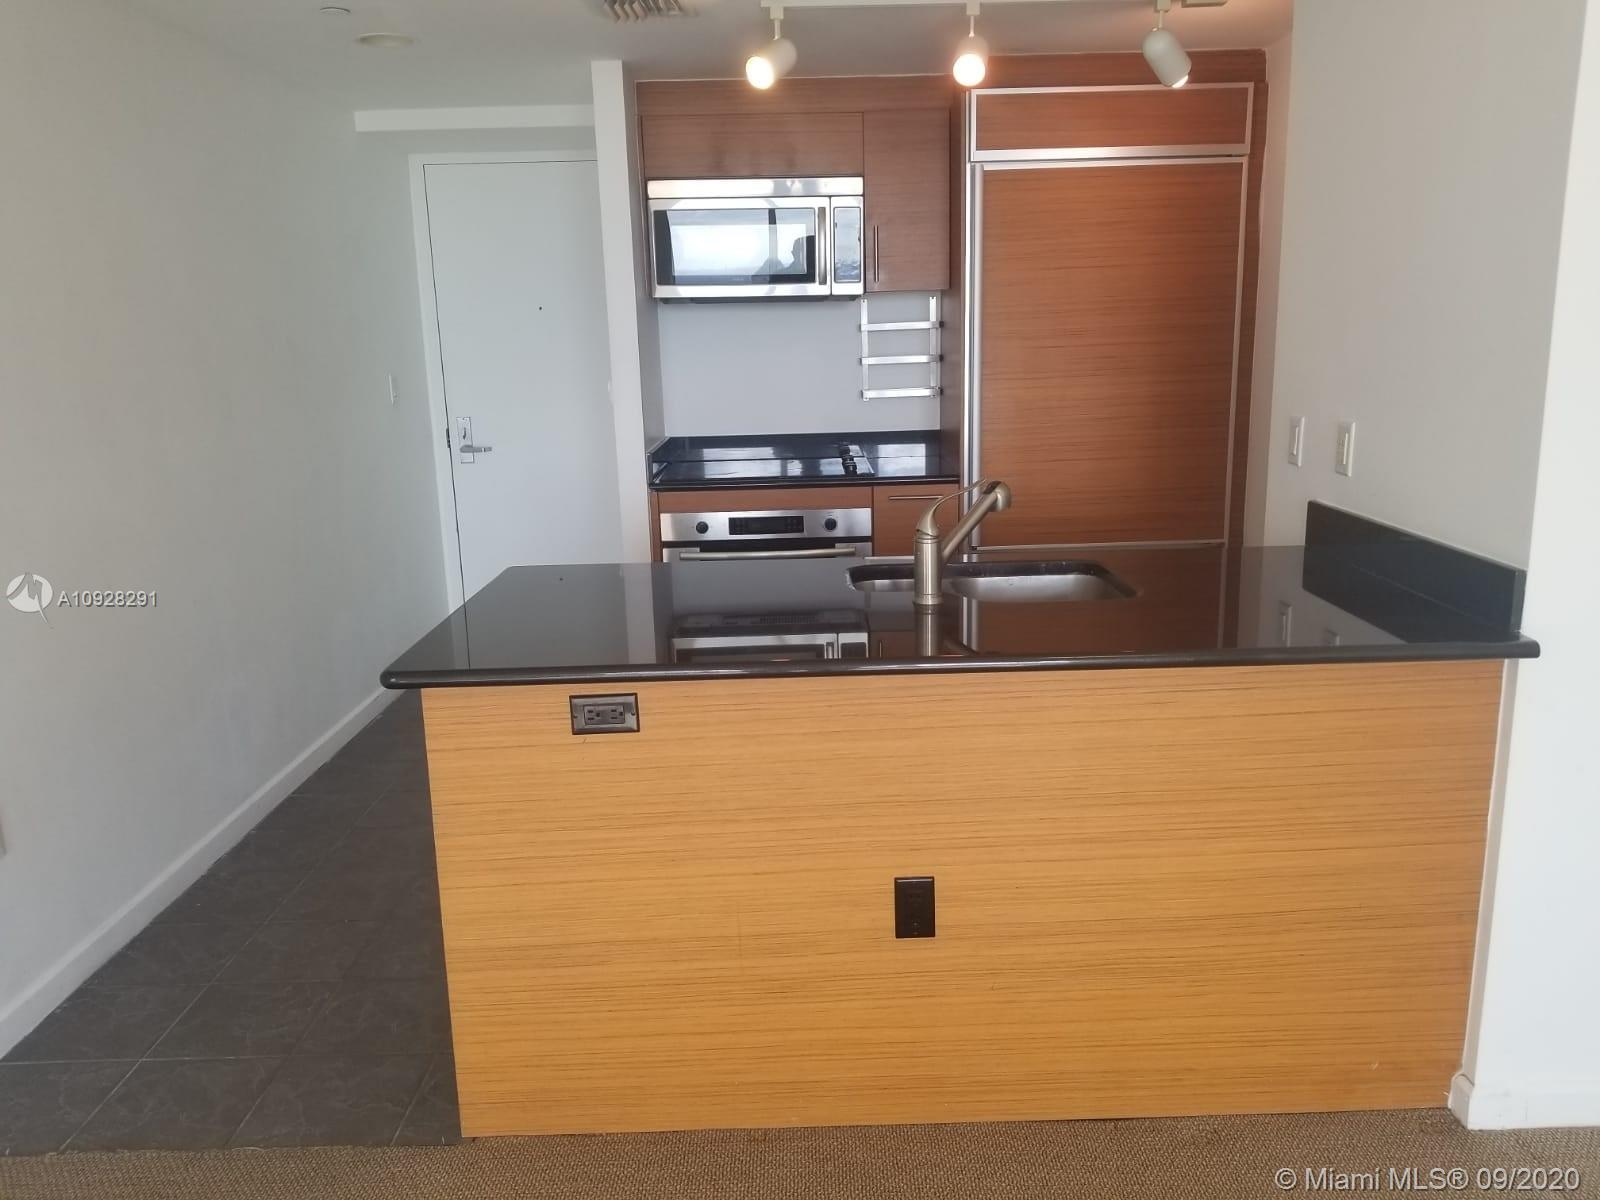 Live in the Miami Skylines famous building 50 Biscayne in Downtown Miami, amazing View of the city, spacious balcony, Italian kitchen & walk in closet. Unit is VACANT, ceramic floors, with one assigned parking space. Excellent location in the heart of Downtown accessible to the metro rail, major expressways and minutes to the beach. Please use Showing Time.